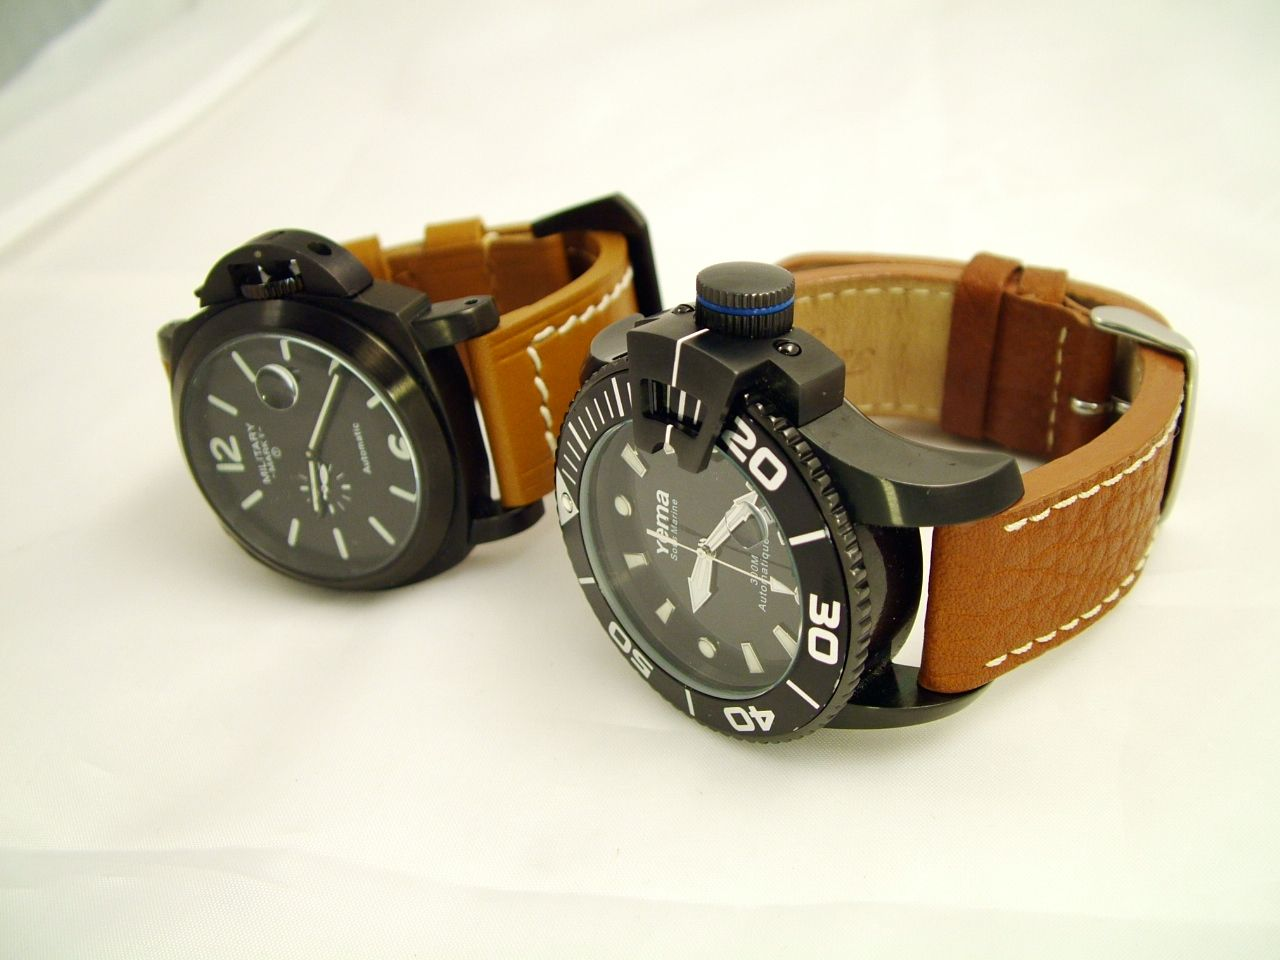 dial watch skagen com leather holst tan watches